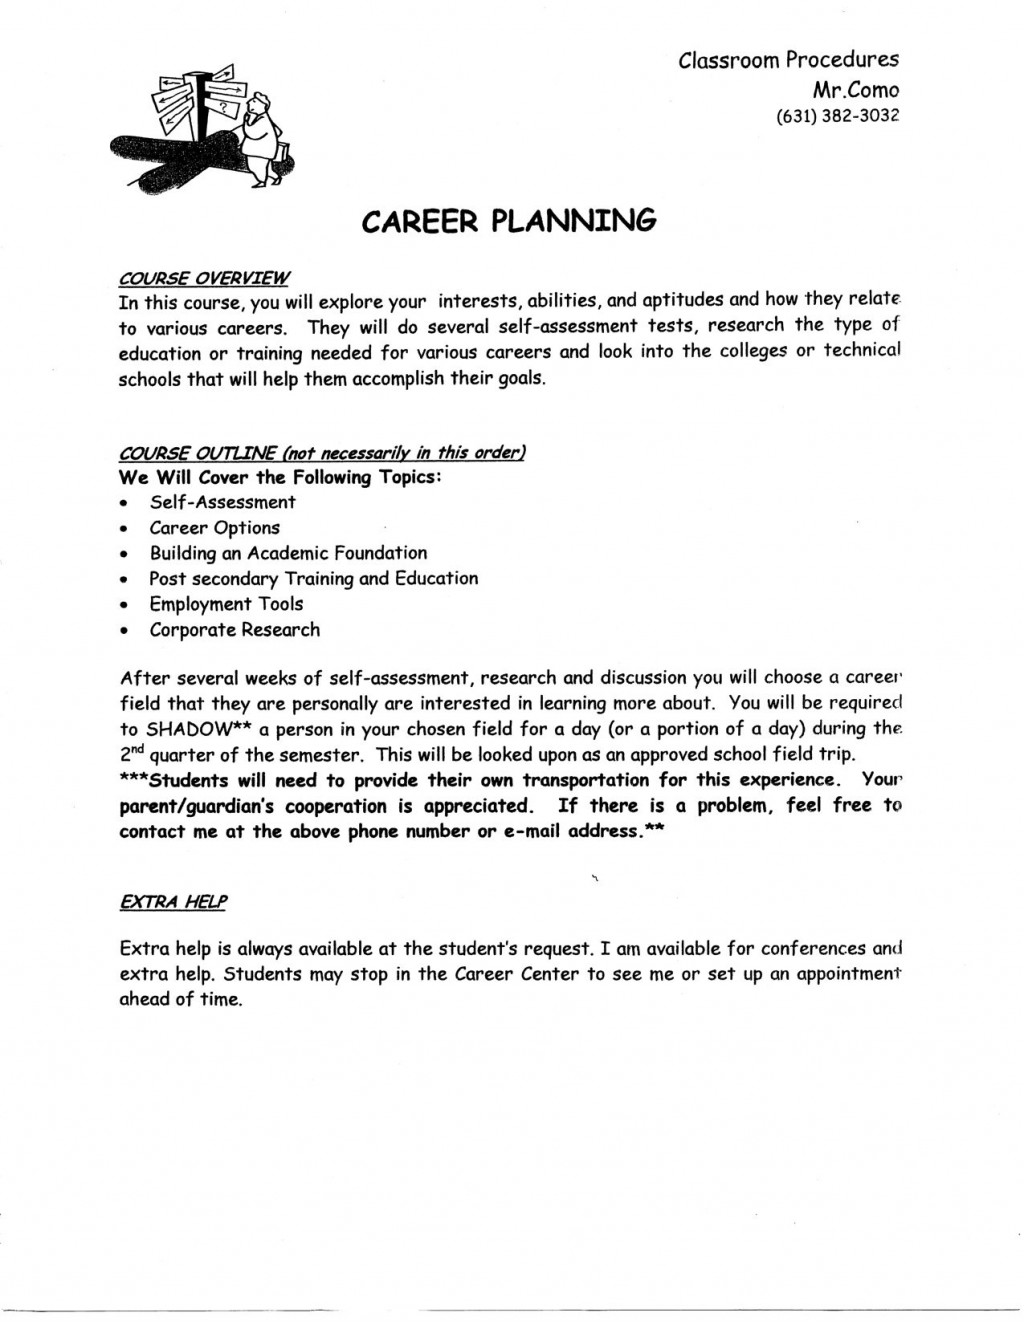 009 Career Planning002 Essay On Breathtaking Goals And Aspirations Sample Choosing A Path Large